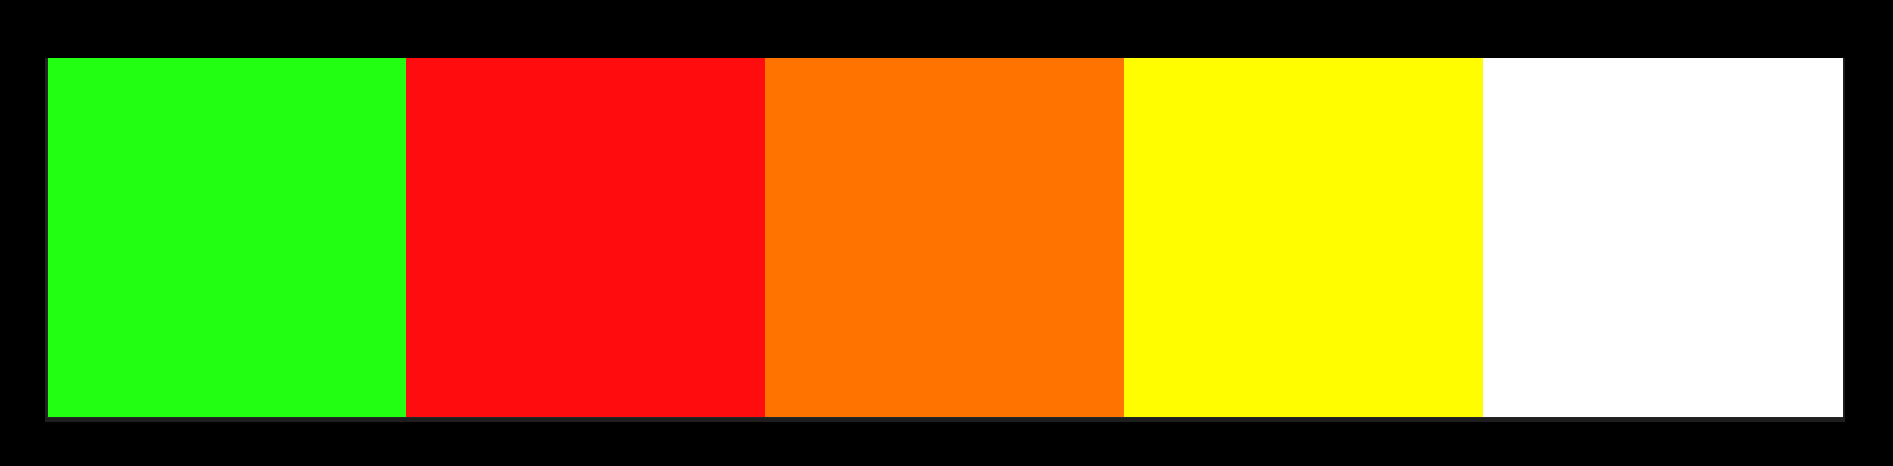 The Second Created Colour Palette